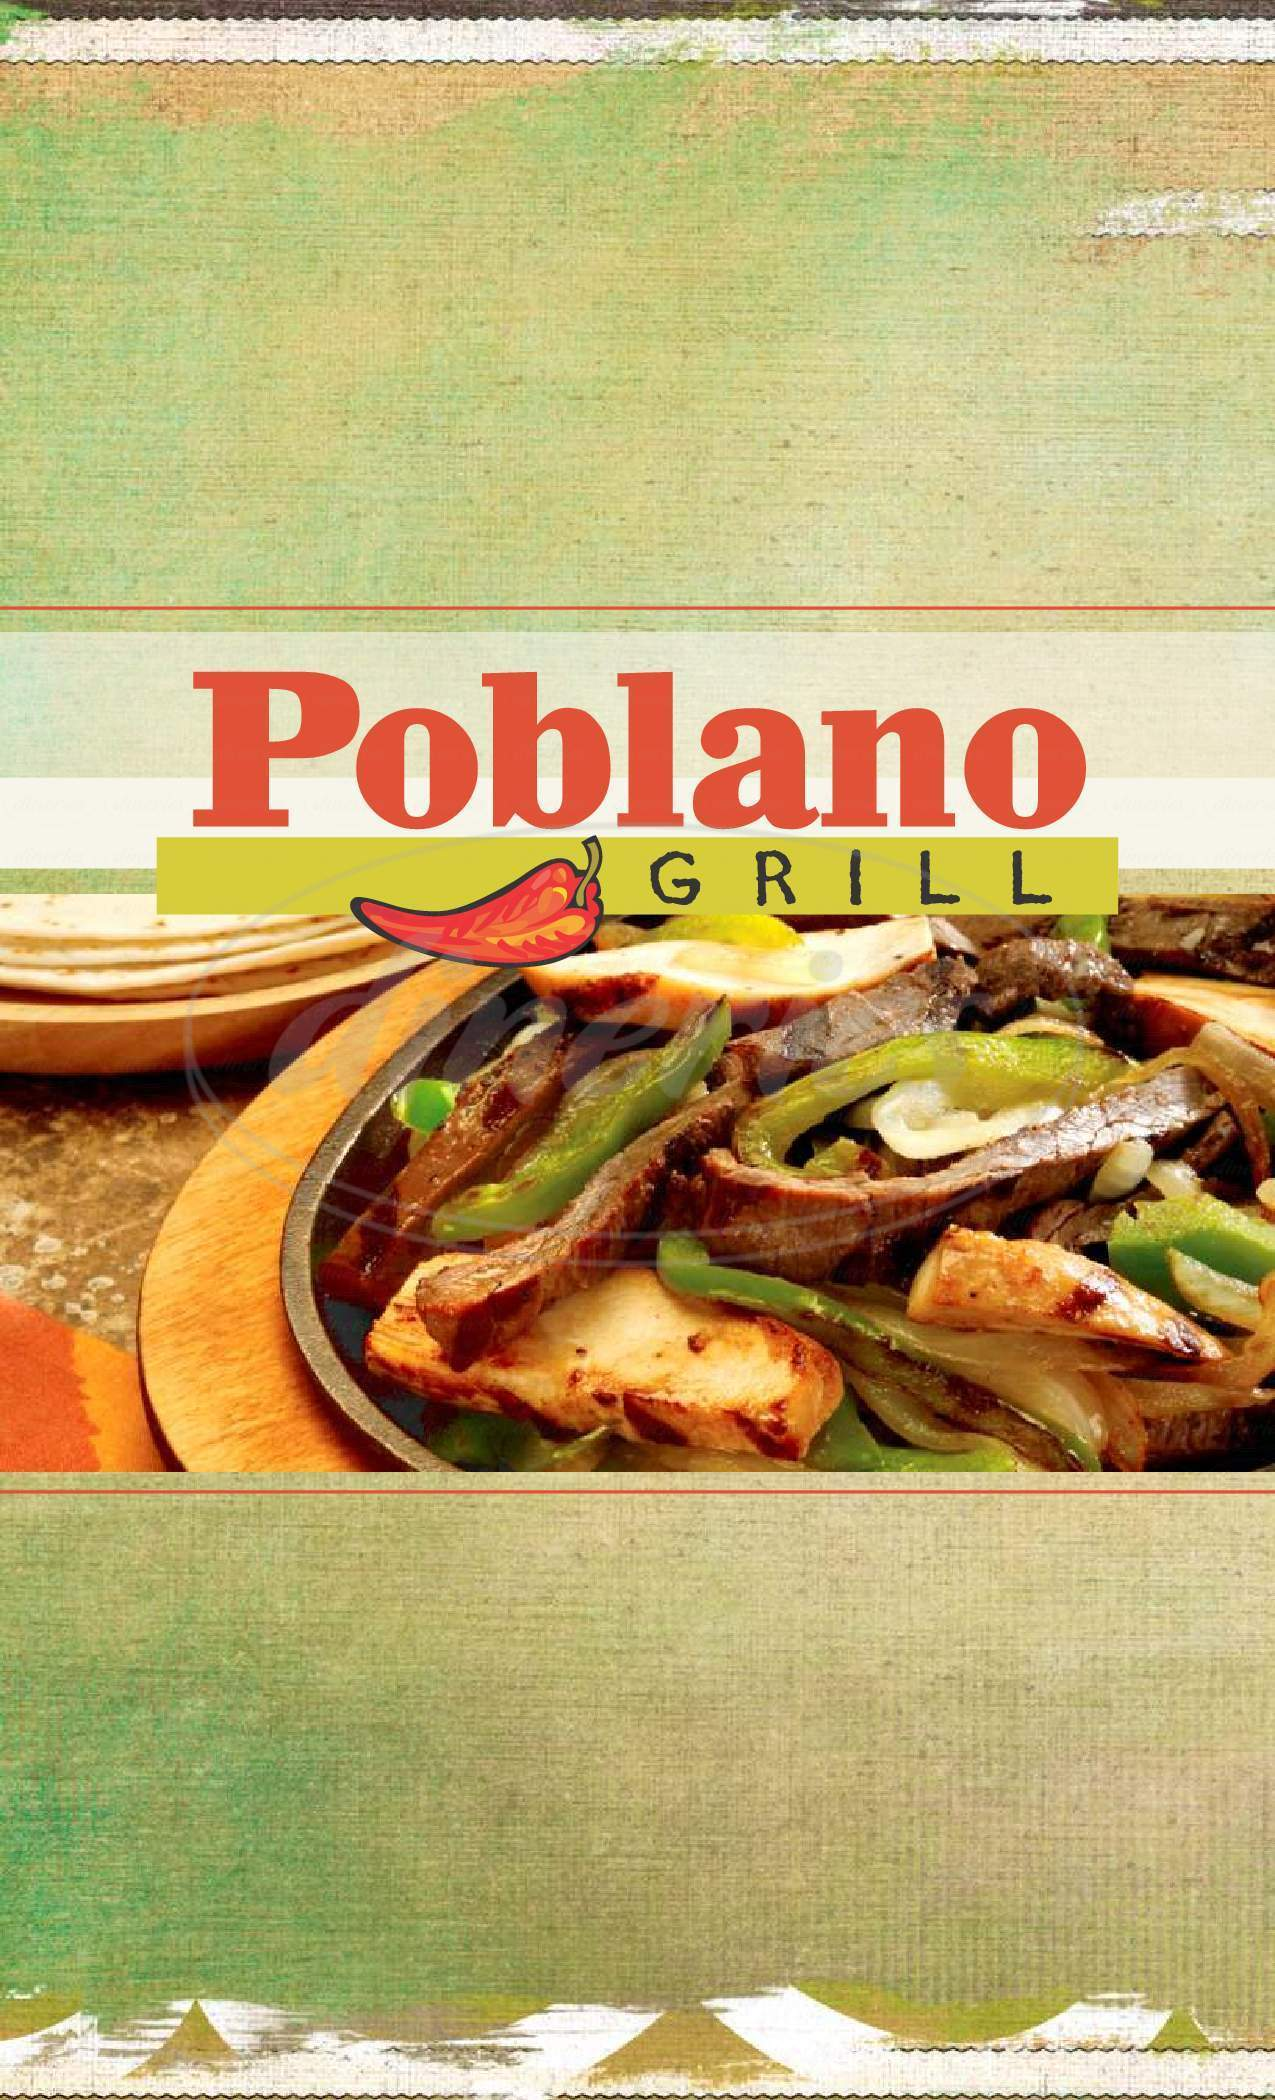 menu for Poblano Grill